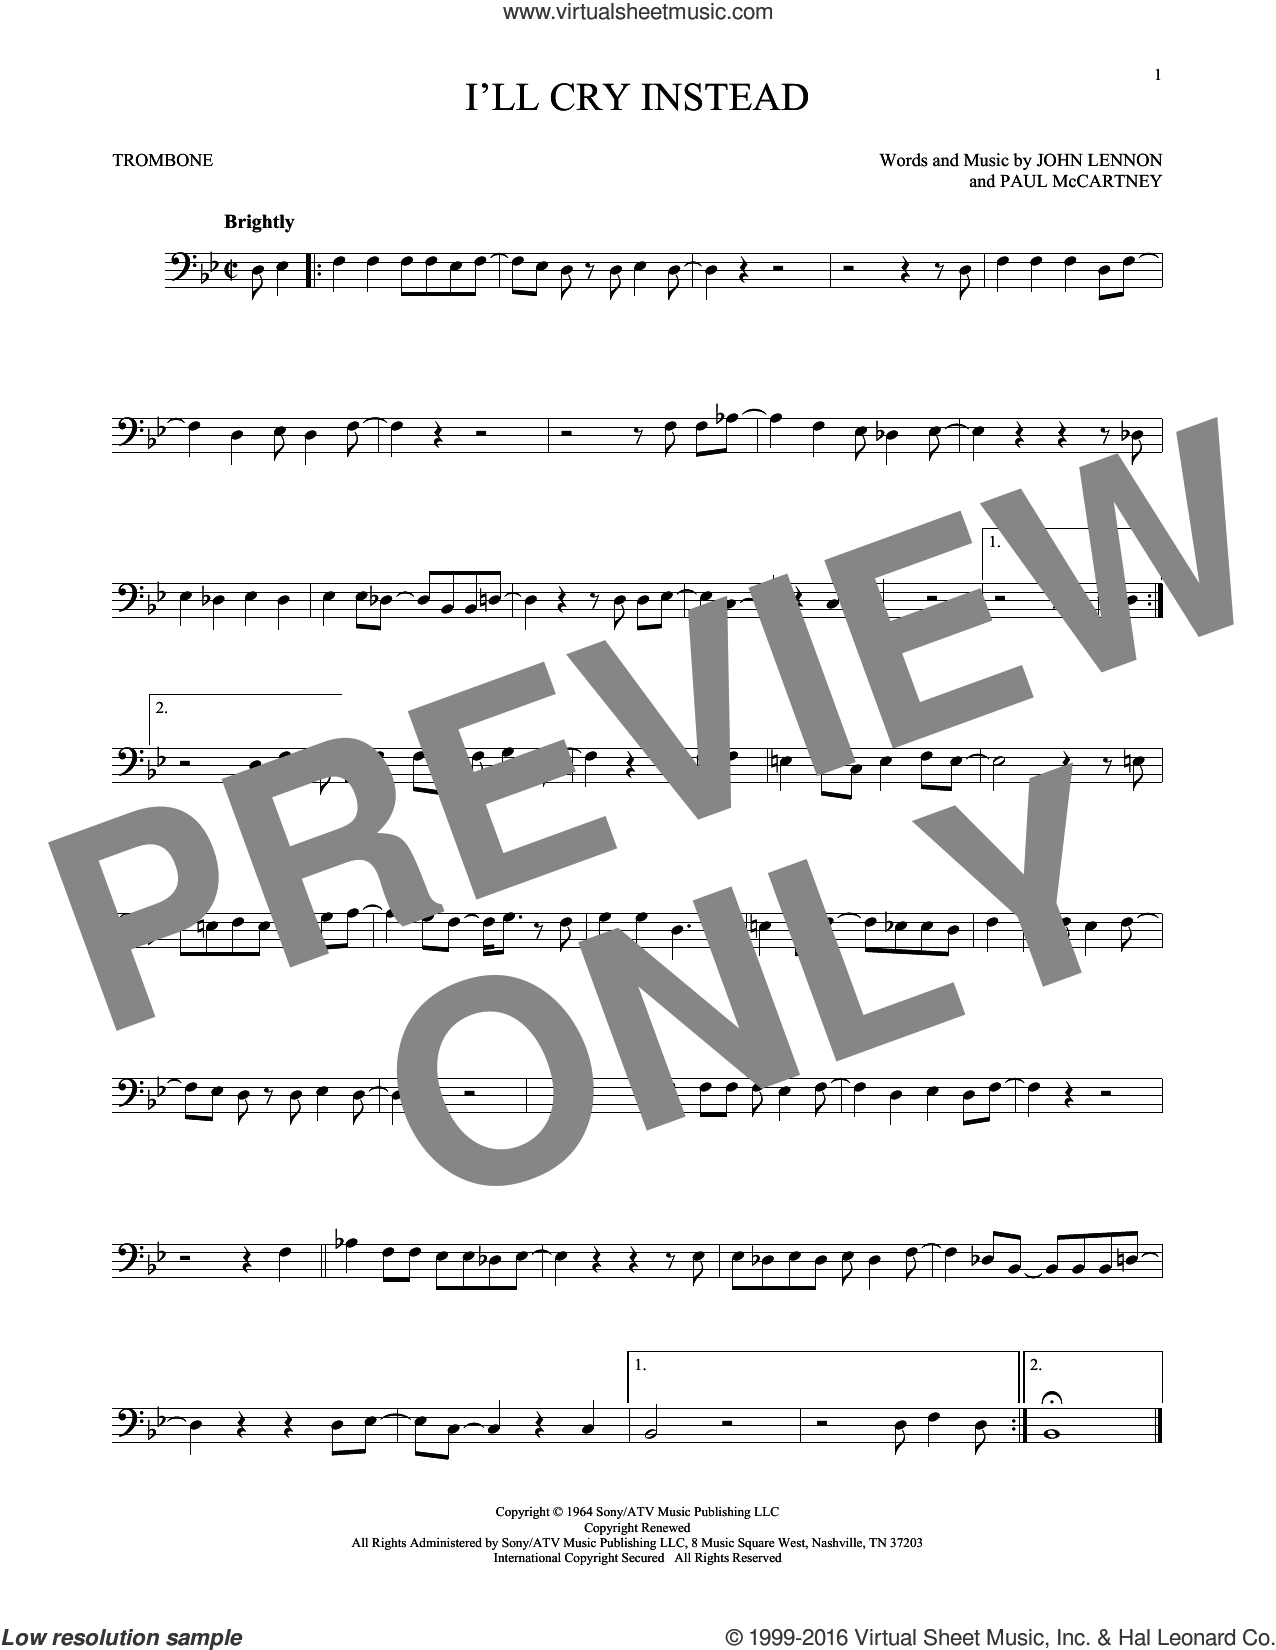 I'll Cry Instead sheet music for trombone solo by The Beatles, John Lennon and Paul McCartney, intermediate trombone. Score Image Preview.